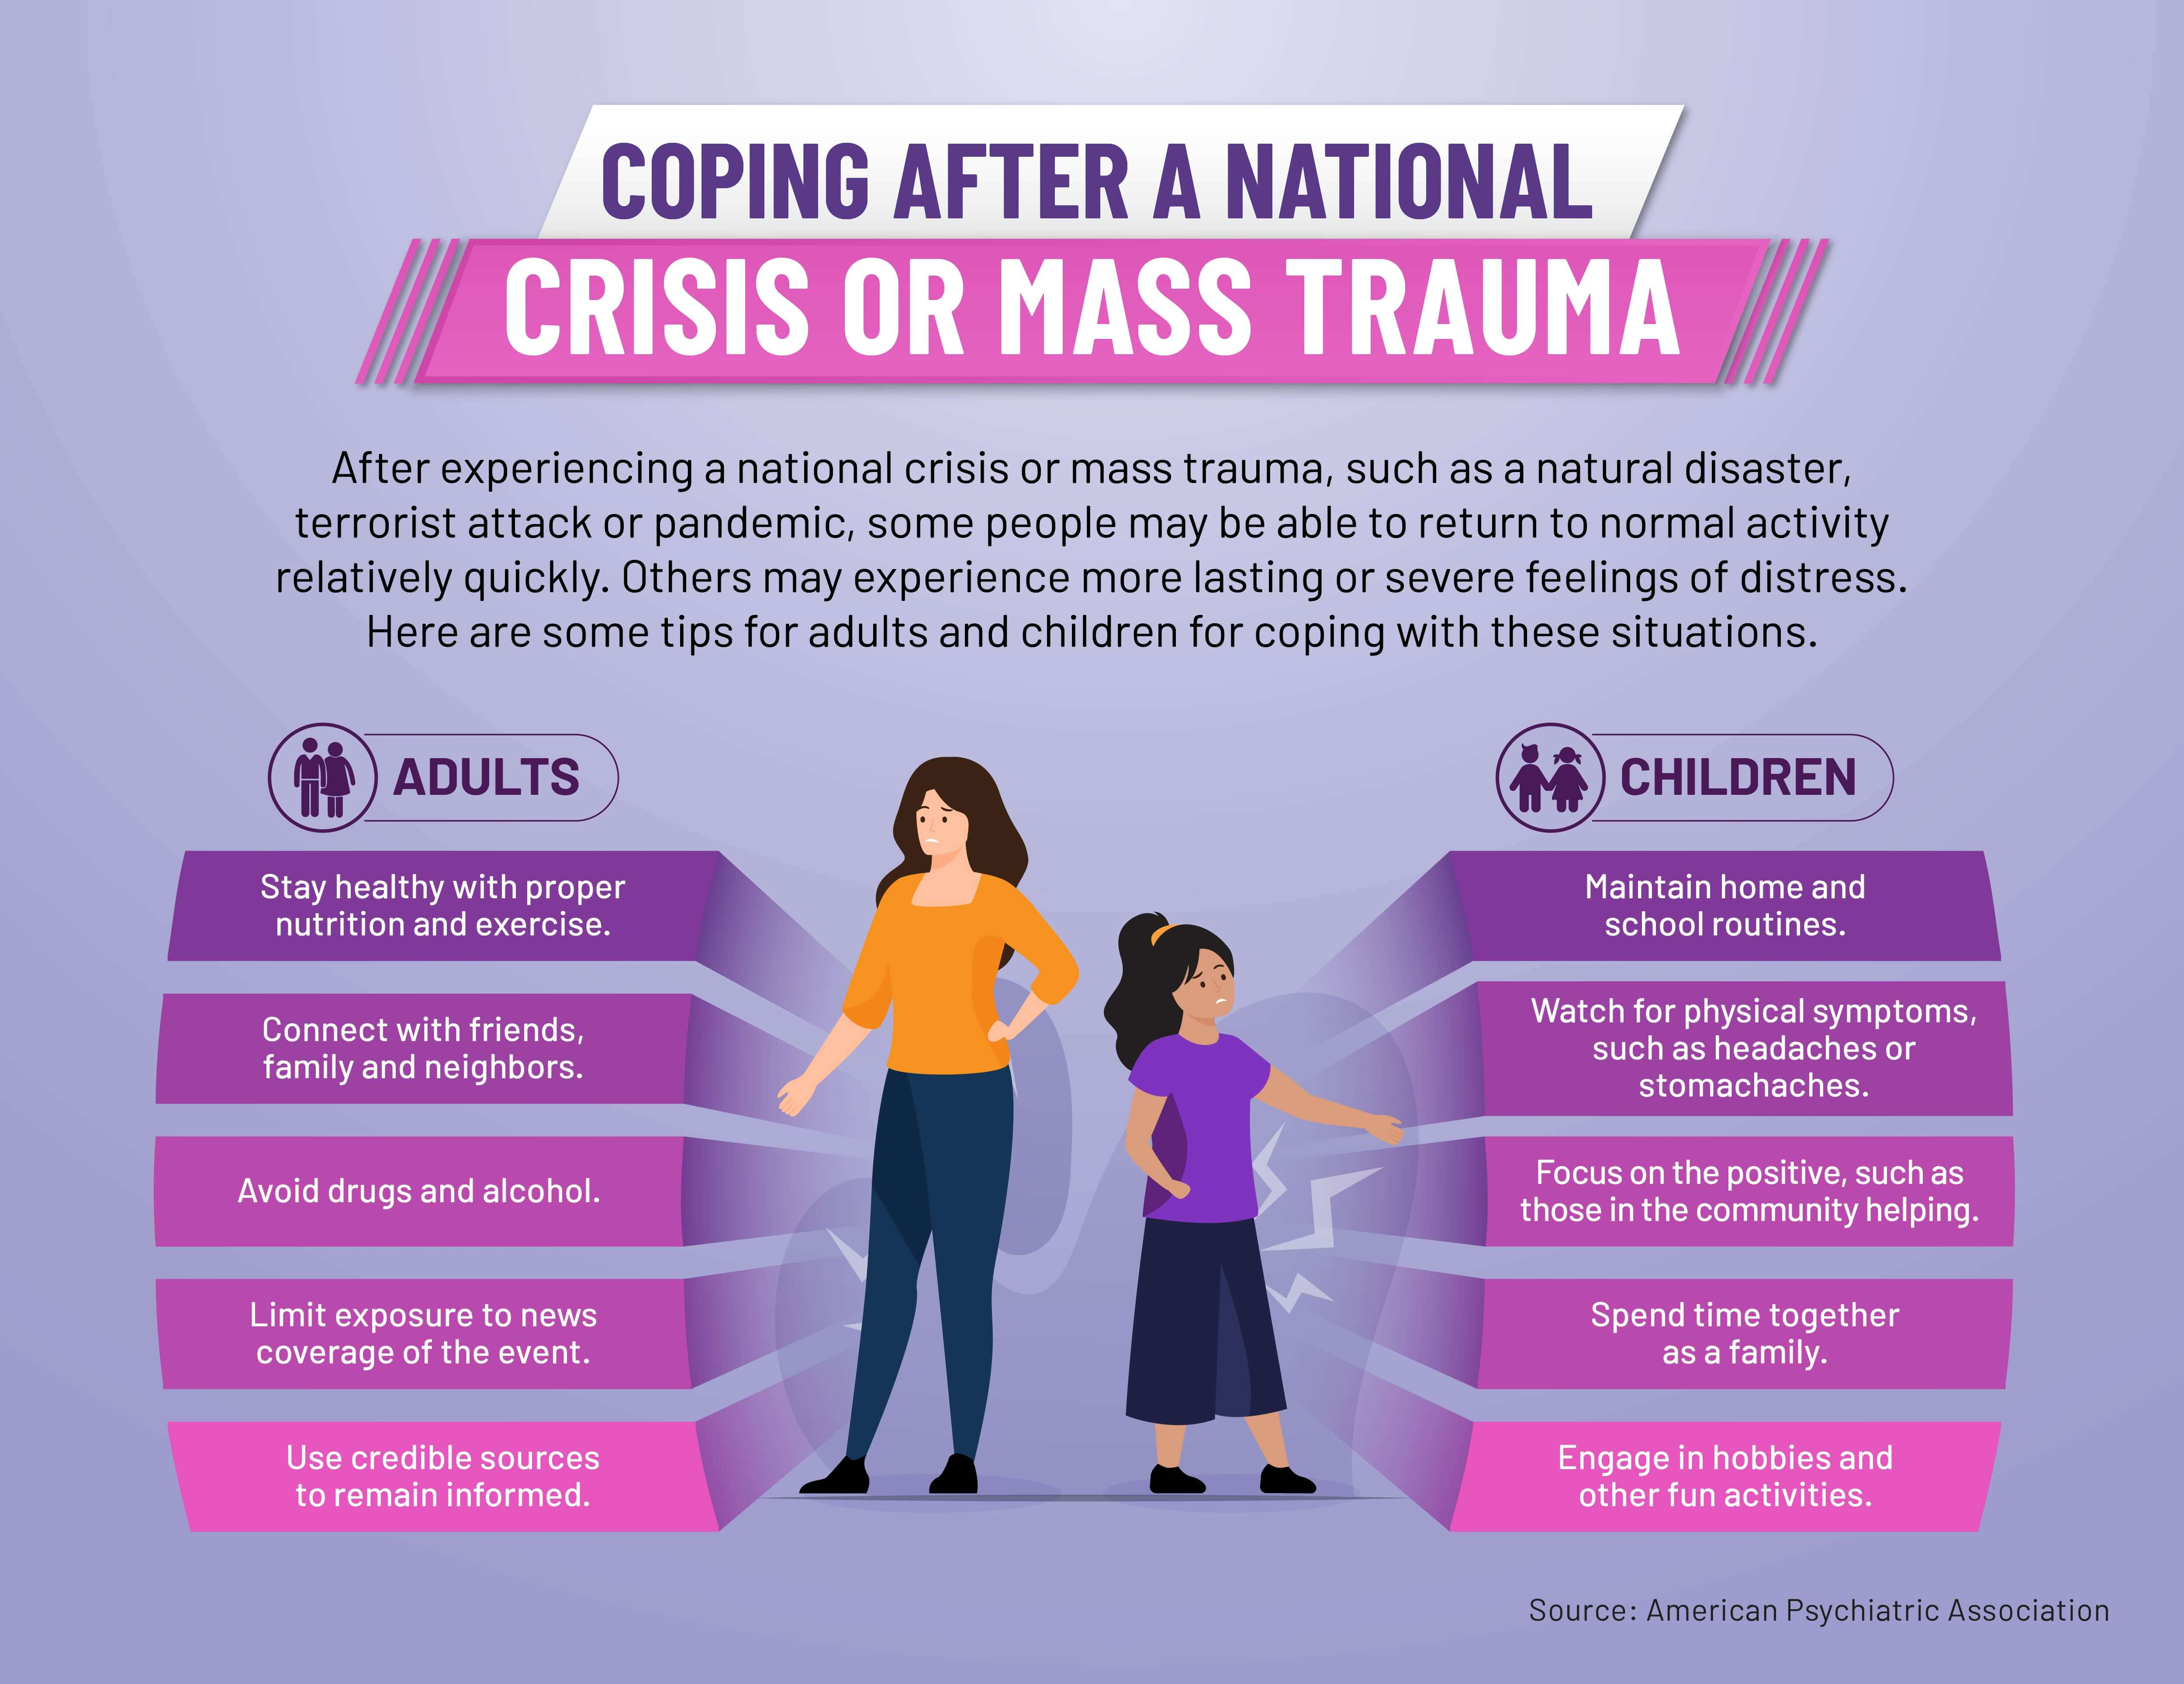 Ten coping strategies for adults and children after a national crisis or mass trauma.